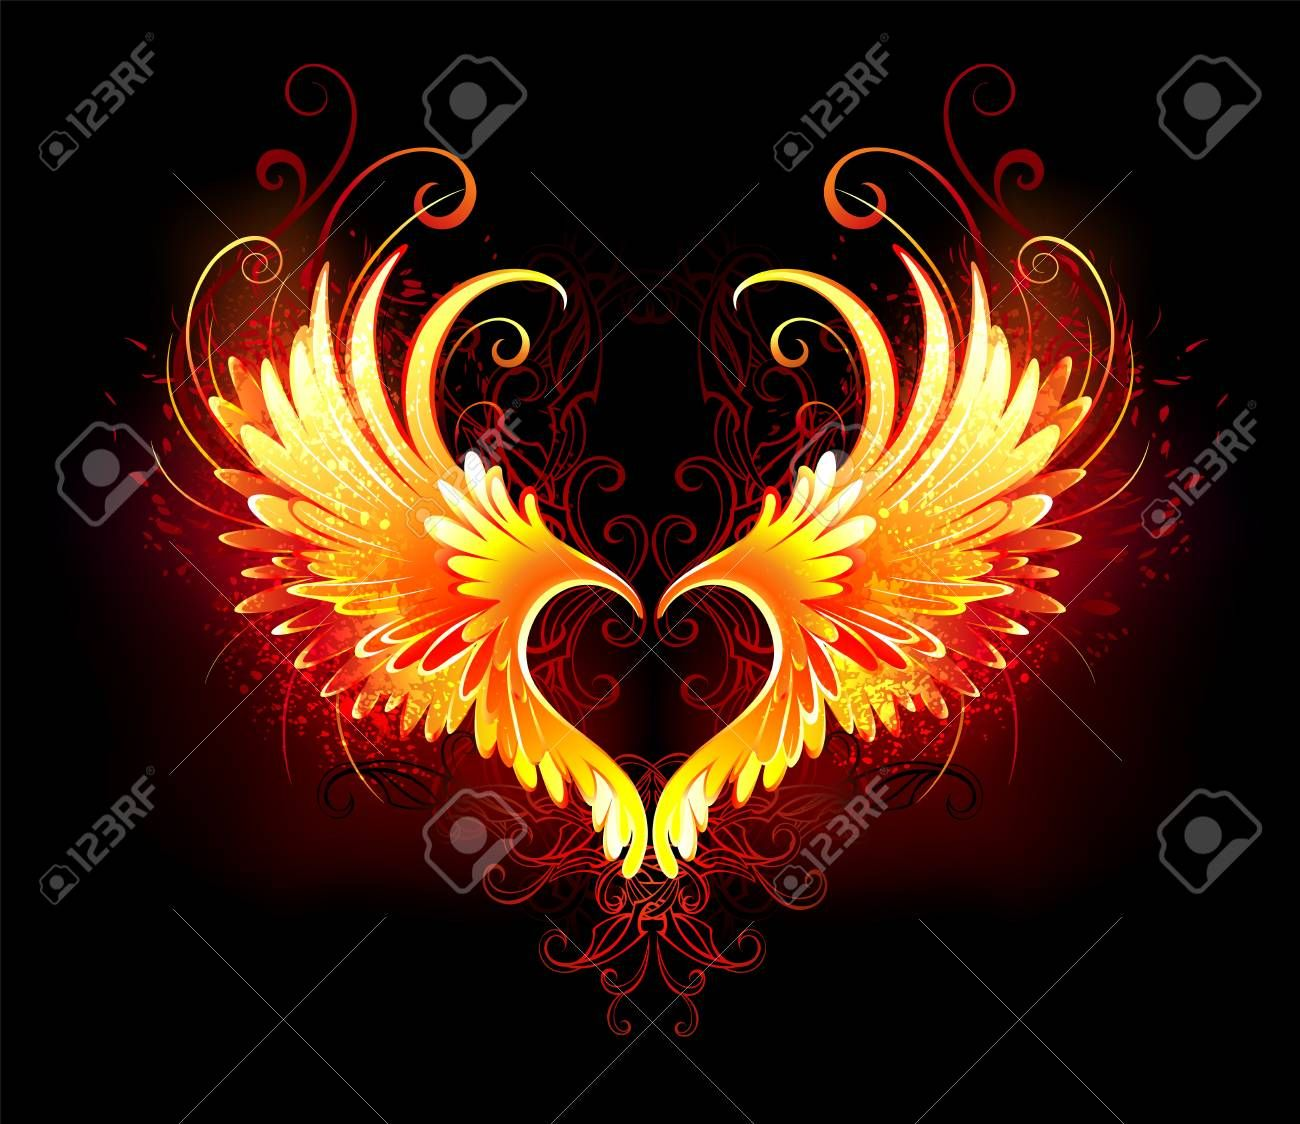 Angel Fire Heart With Flaming Wings On Black Background Illustration Aff Heart Flaming Angel Fire Background Fire Heart Heart With Wings Fire Art